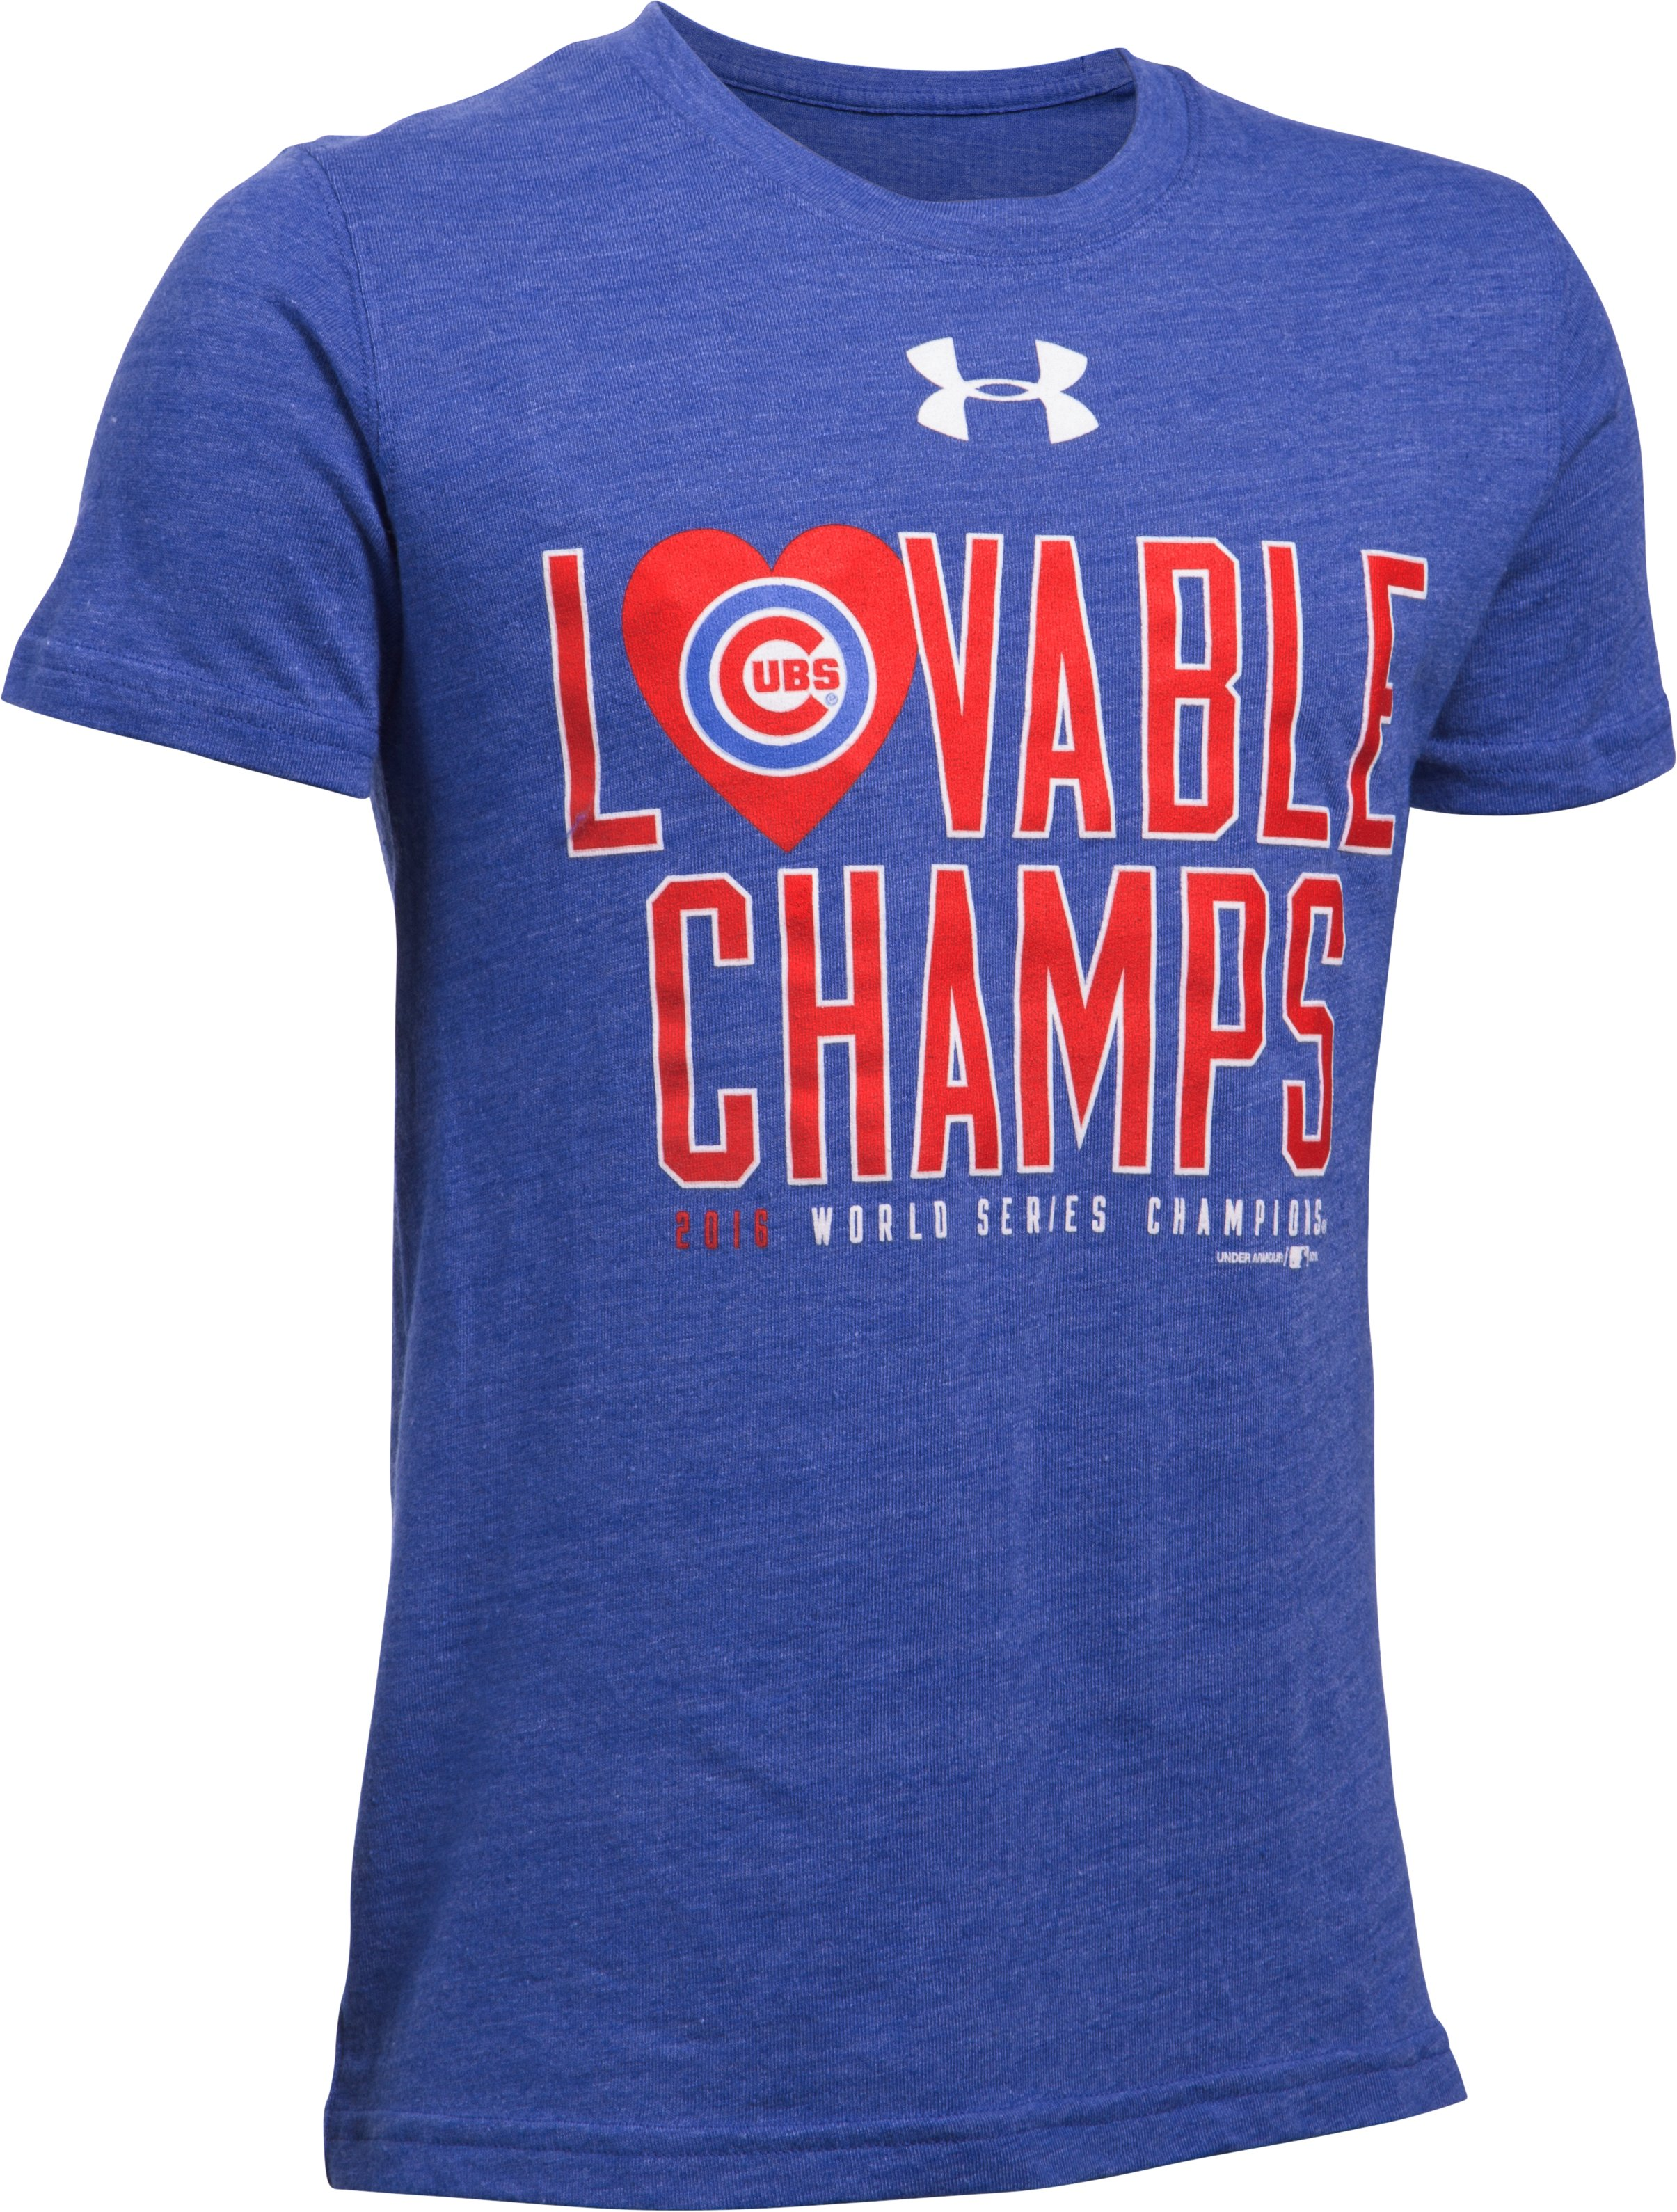 Kids' Chicago Cubs Lovable Champ T-Shirt, Royal